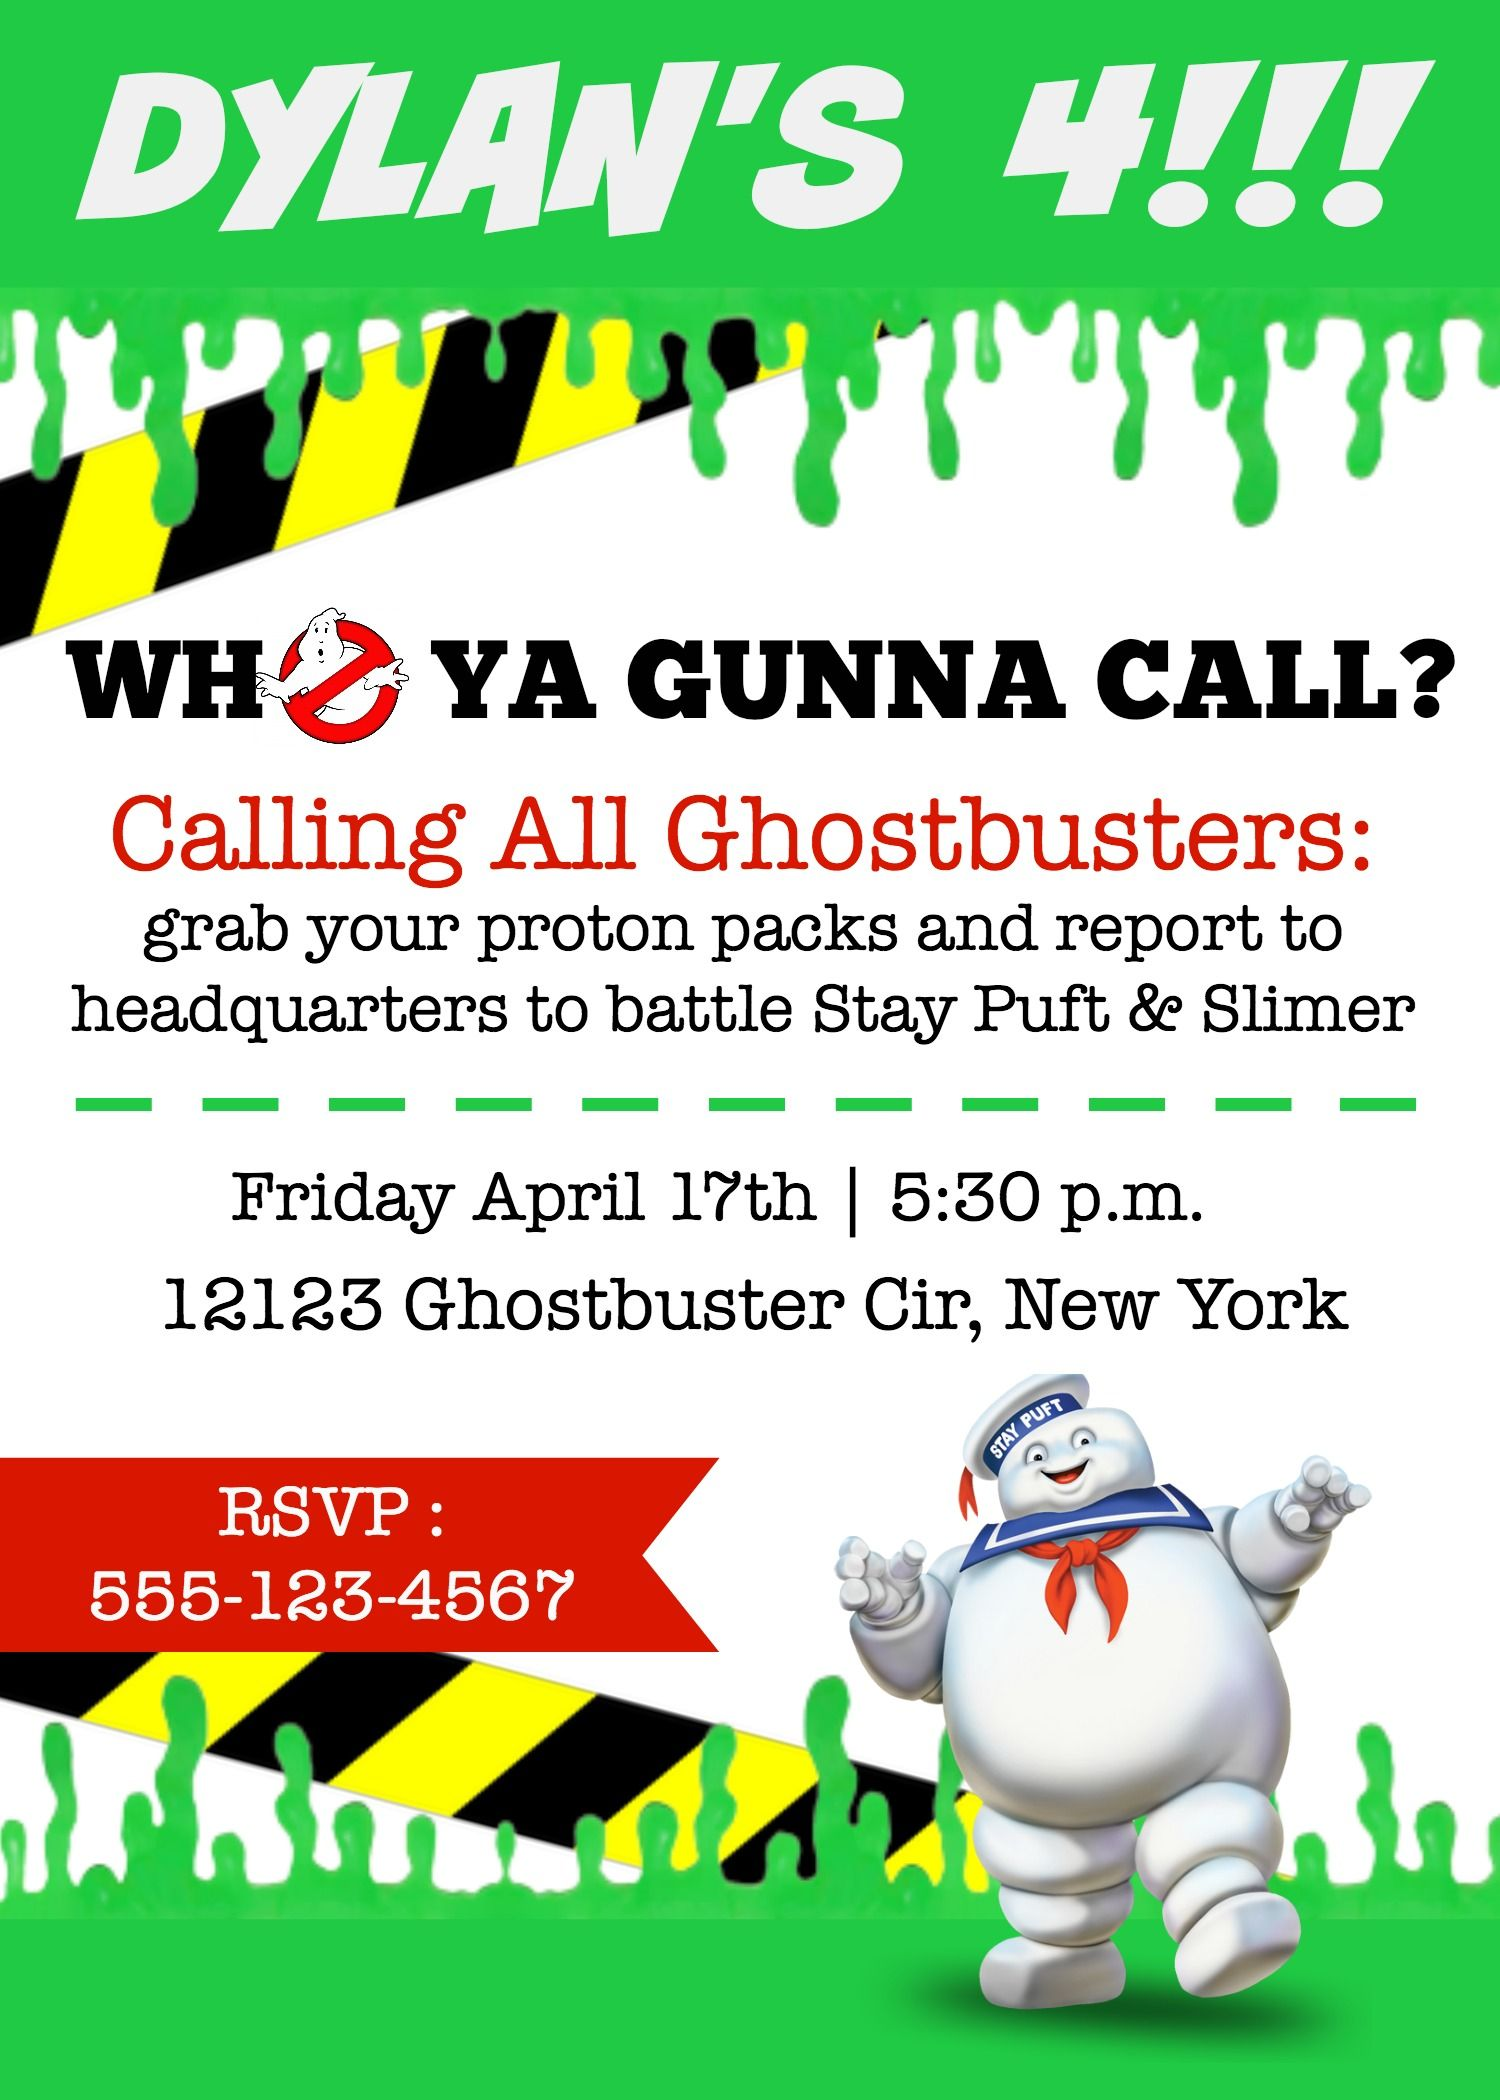 Ghostbusters Free Invite | Kailons 4th Birthday | Pinterest ...